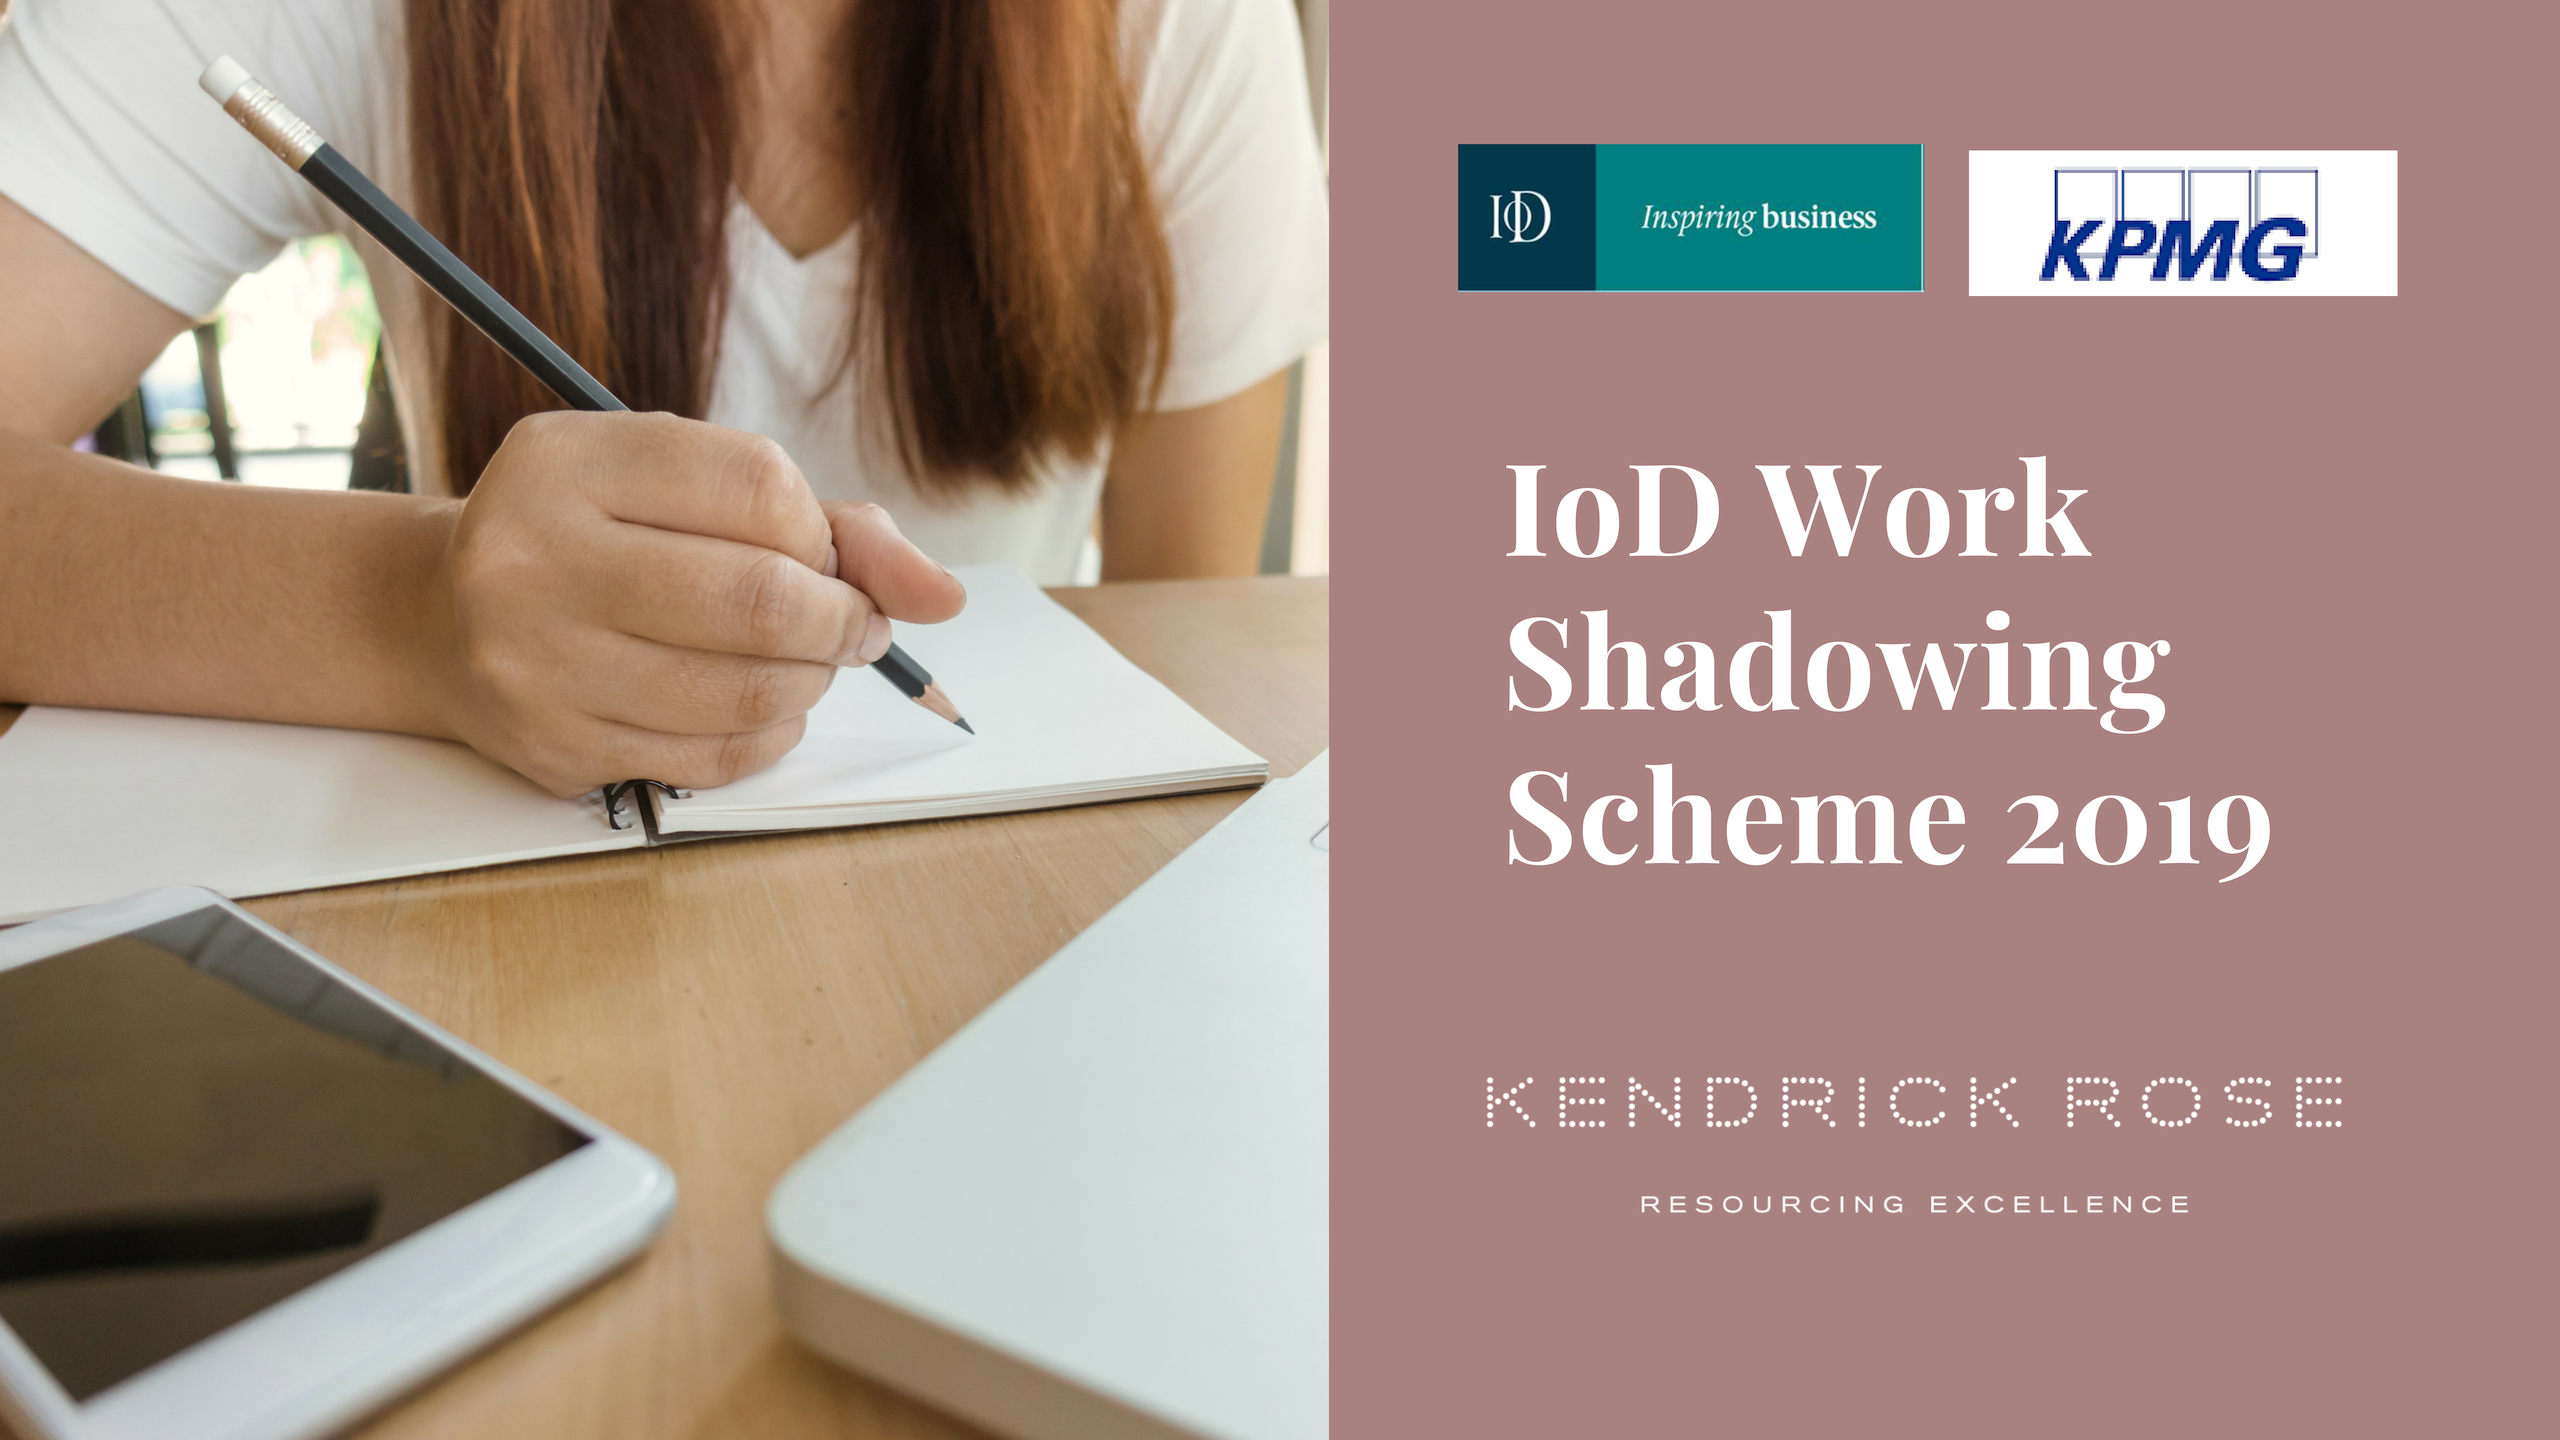 Iod Work Shadowing Scheme 2019 1